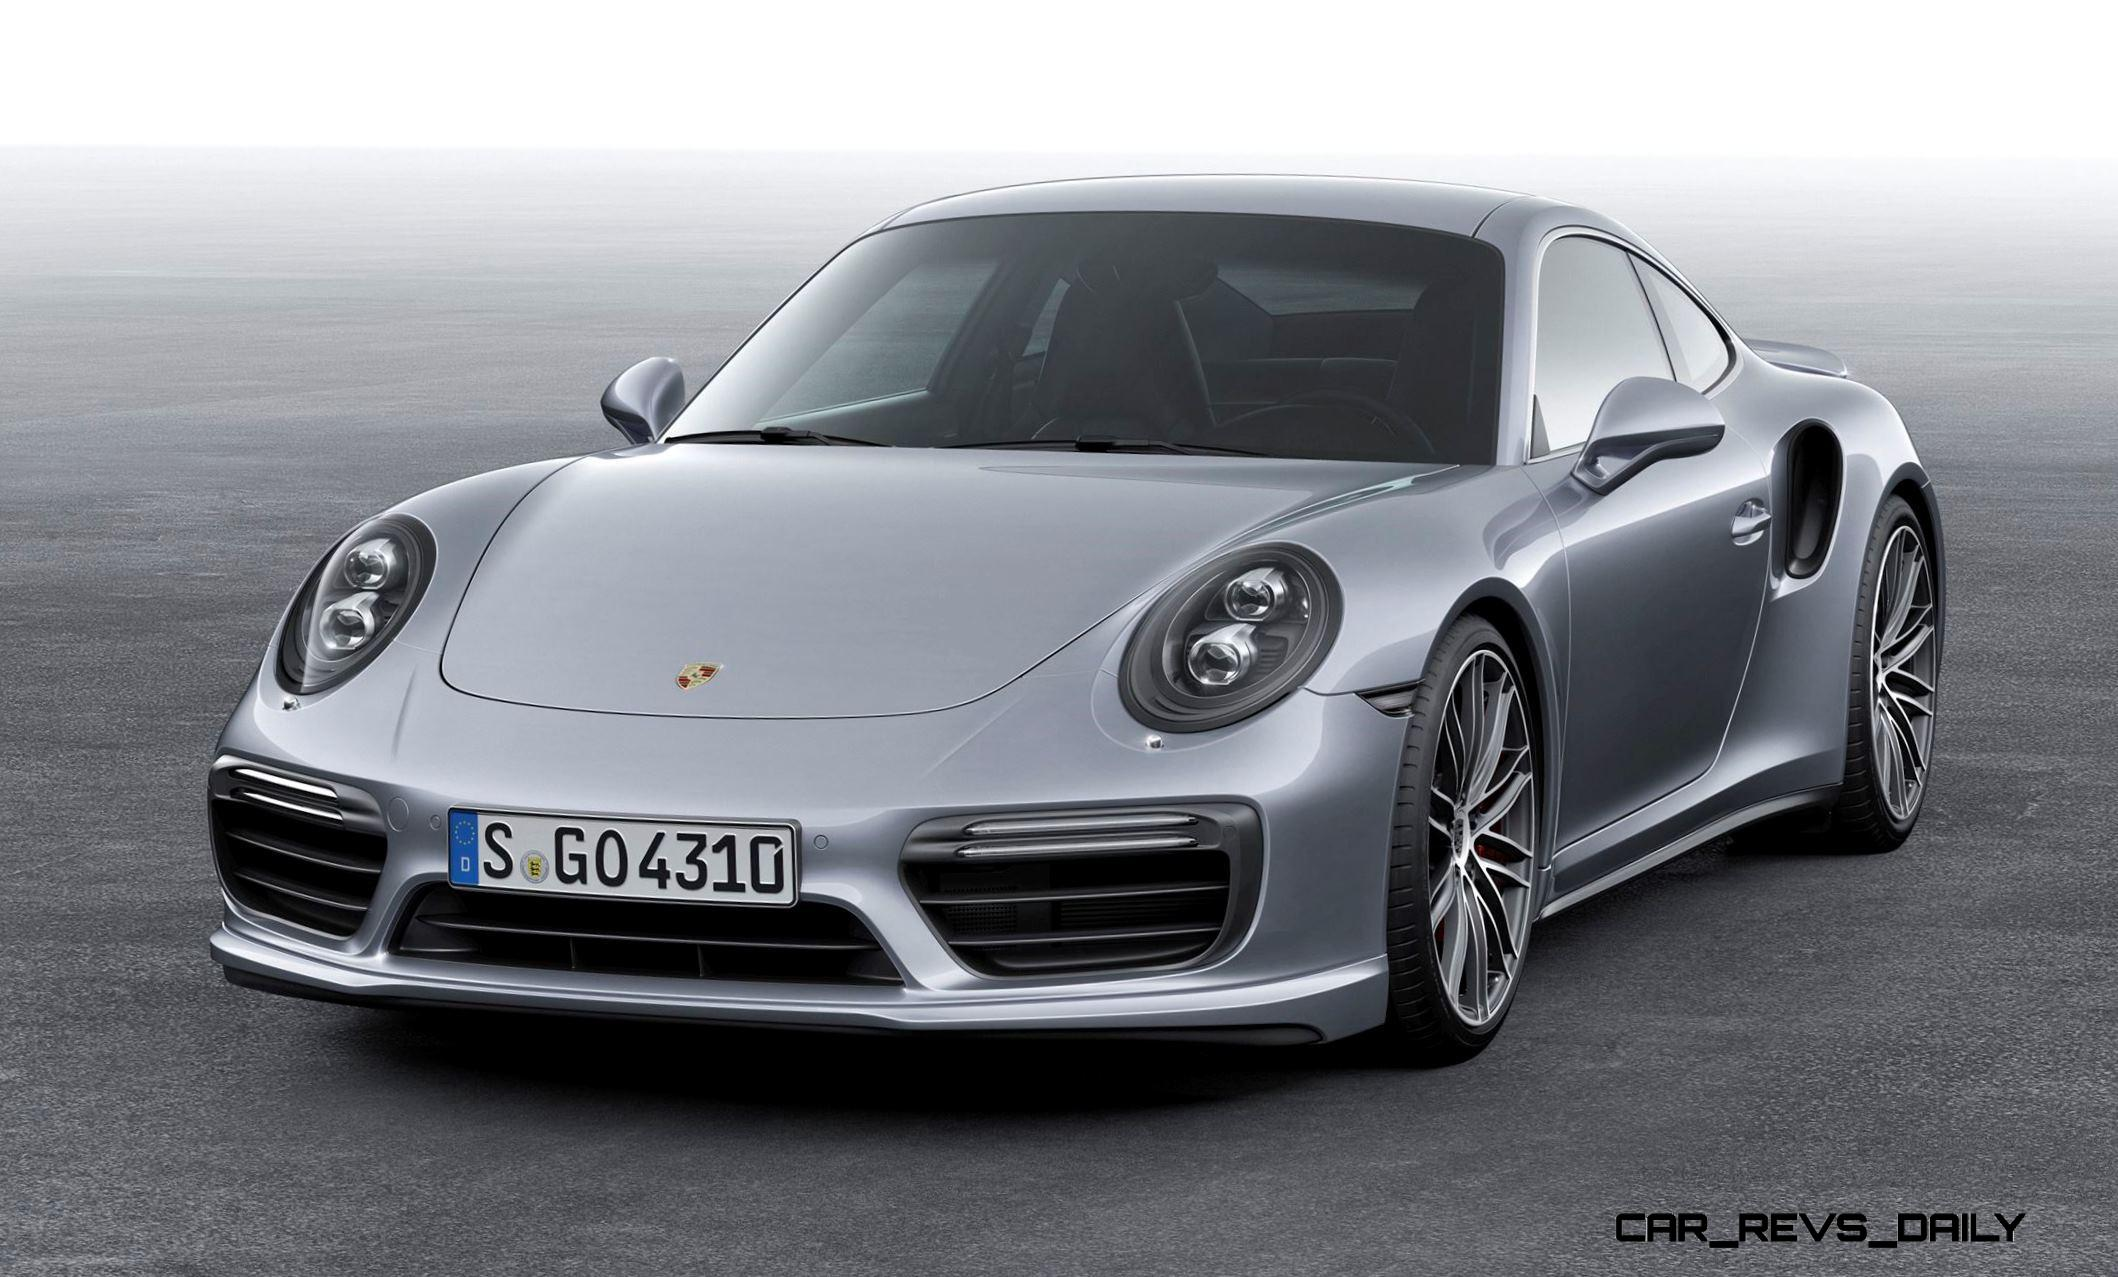 215mph 2017 porsche 911 turbo s revealed new anti lag h6tt on sale in january car. Black Bedroom Furniture Sets. Home Design Ideas